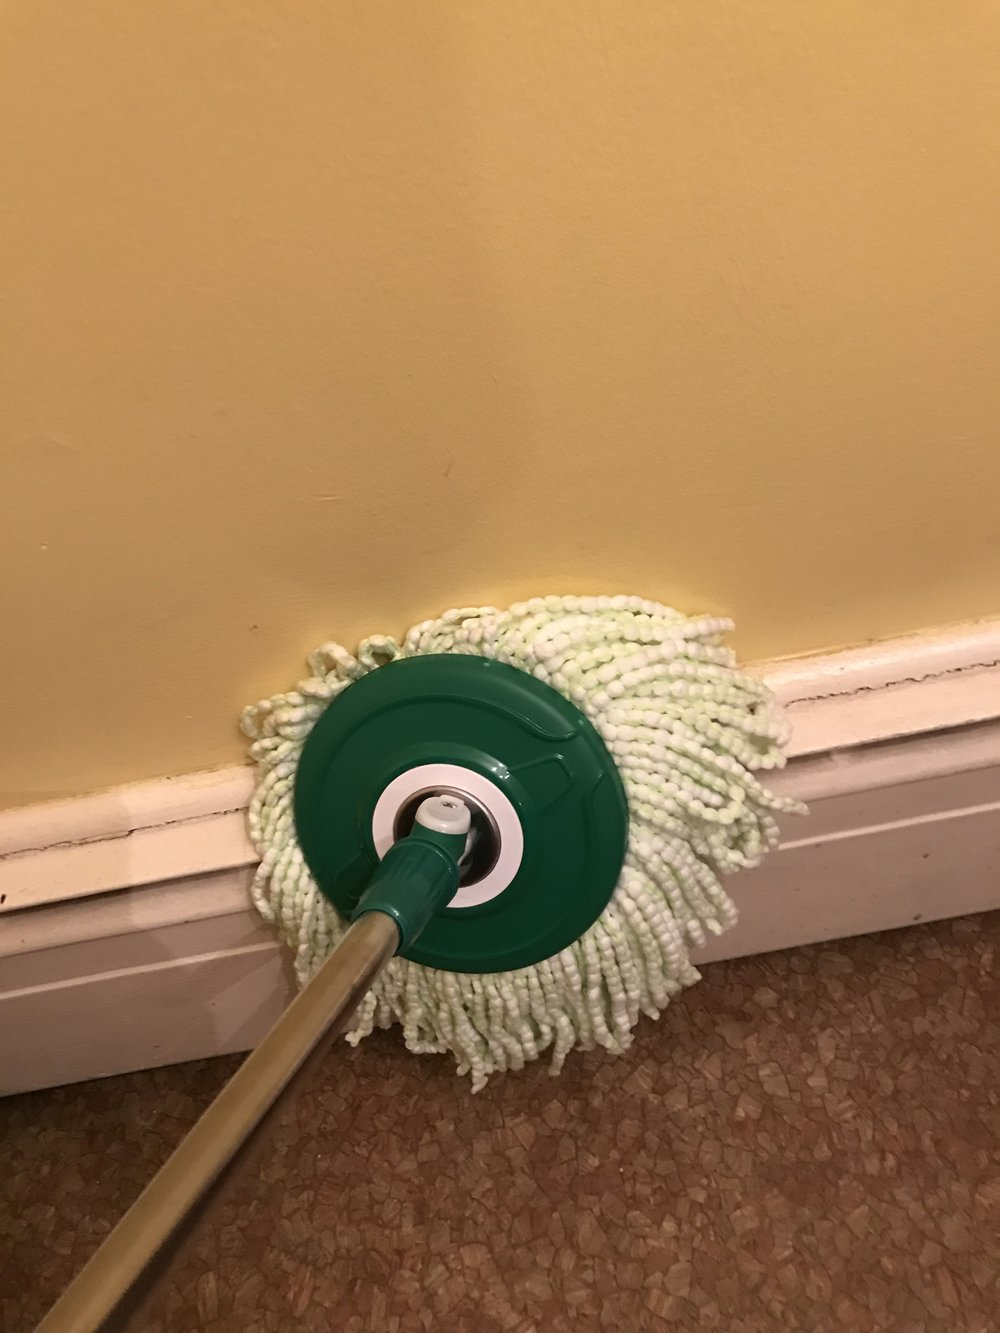 Libman spin mop wiping the dust off baseboard heaters so I don't have to bend down to do it. WIN!